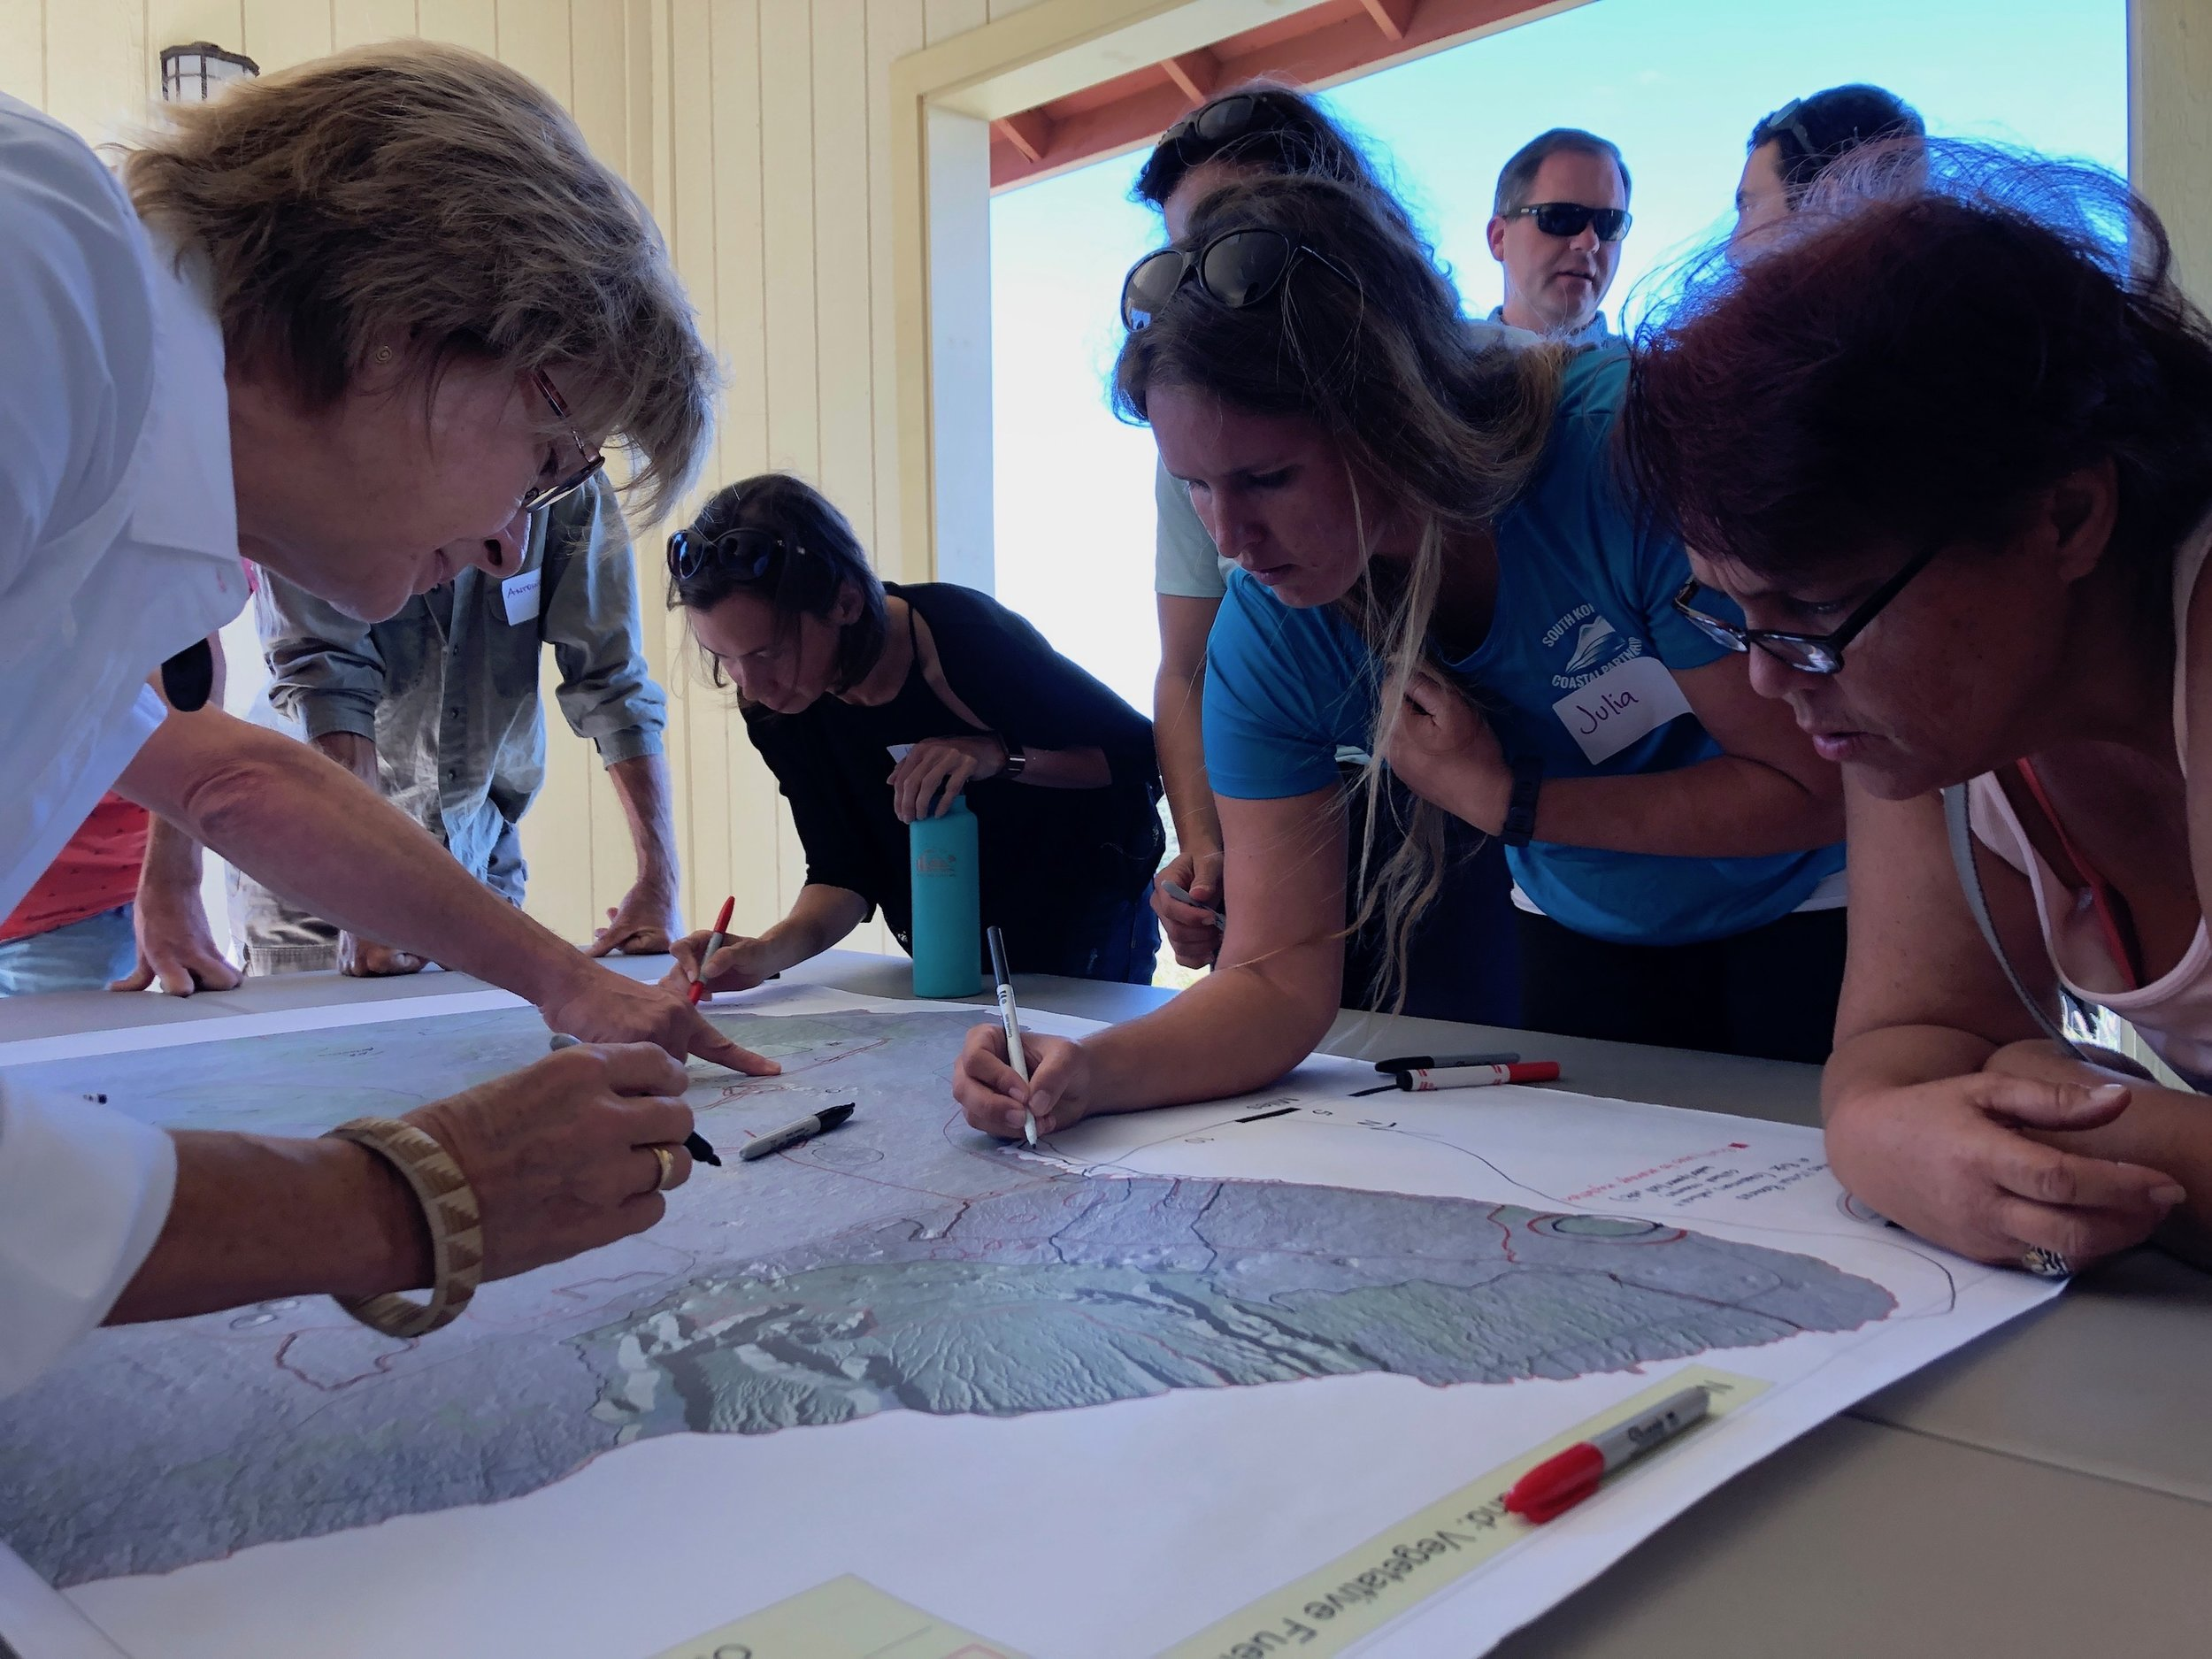 Hawaii Island Kailapa Vegetative Fuels Management Collaborative Action Planning Workshop_2_26_2019_41.jpg